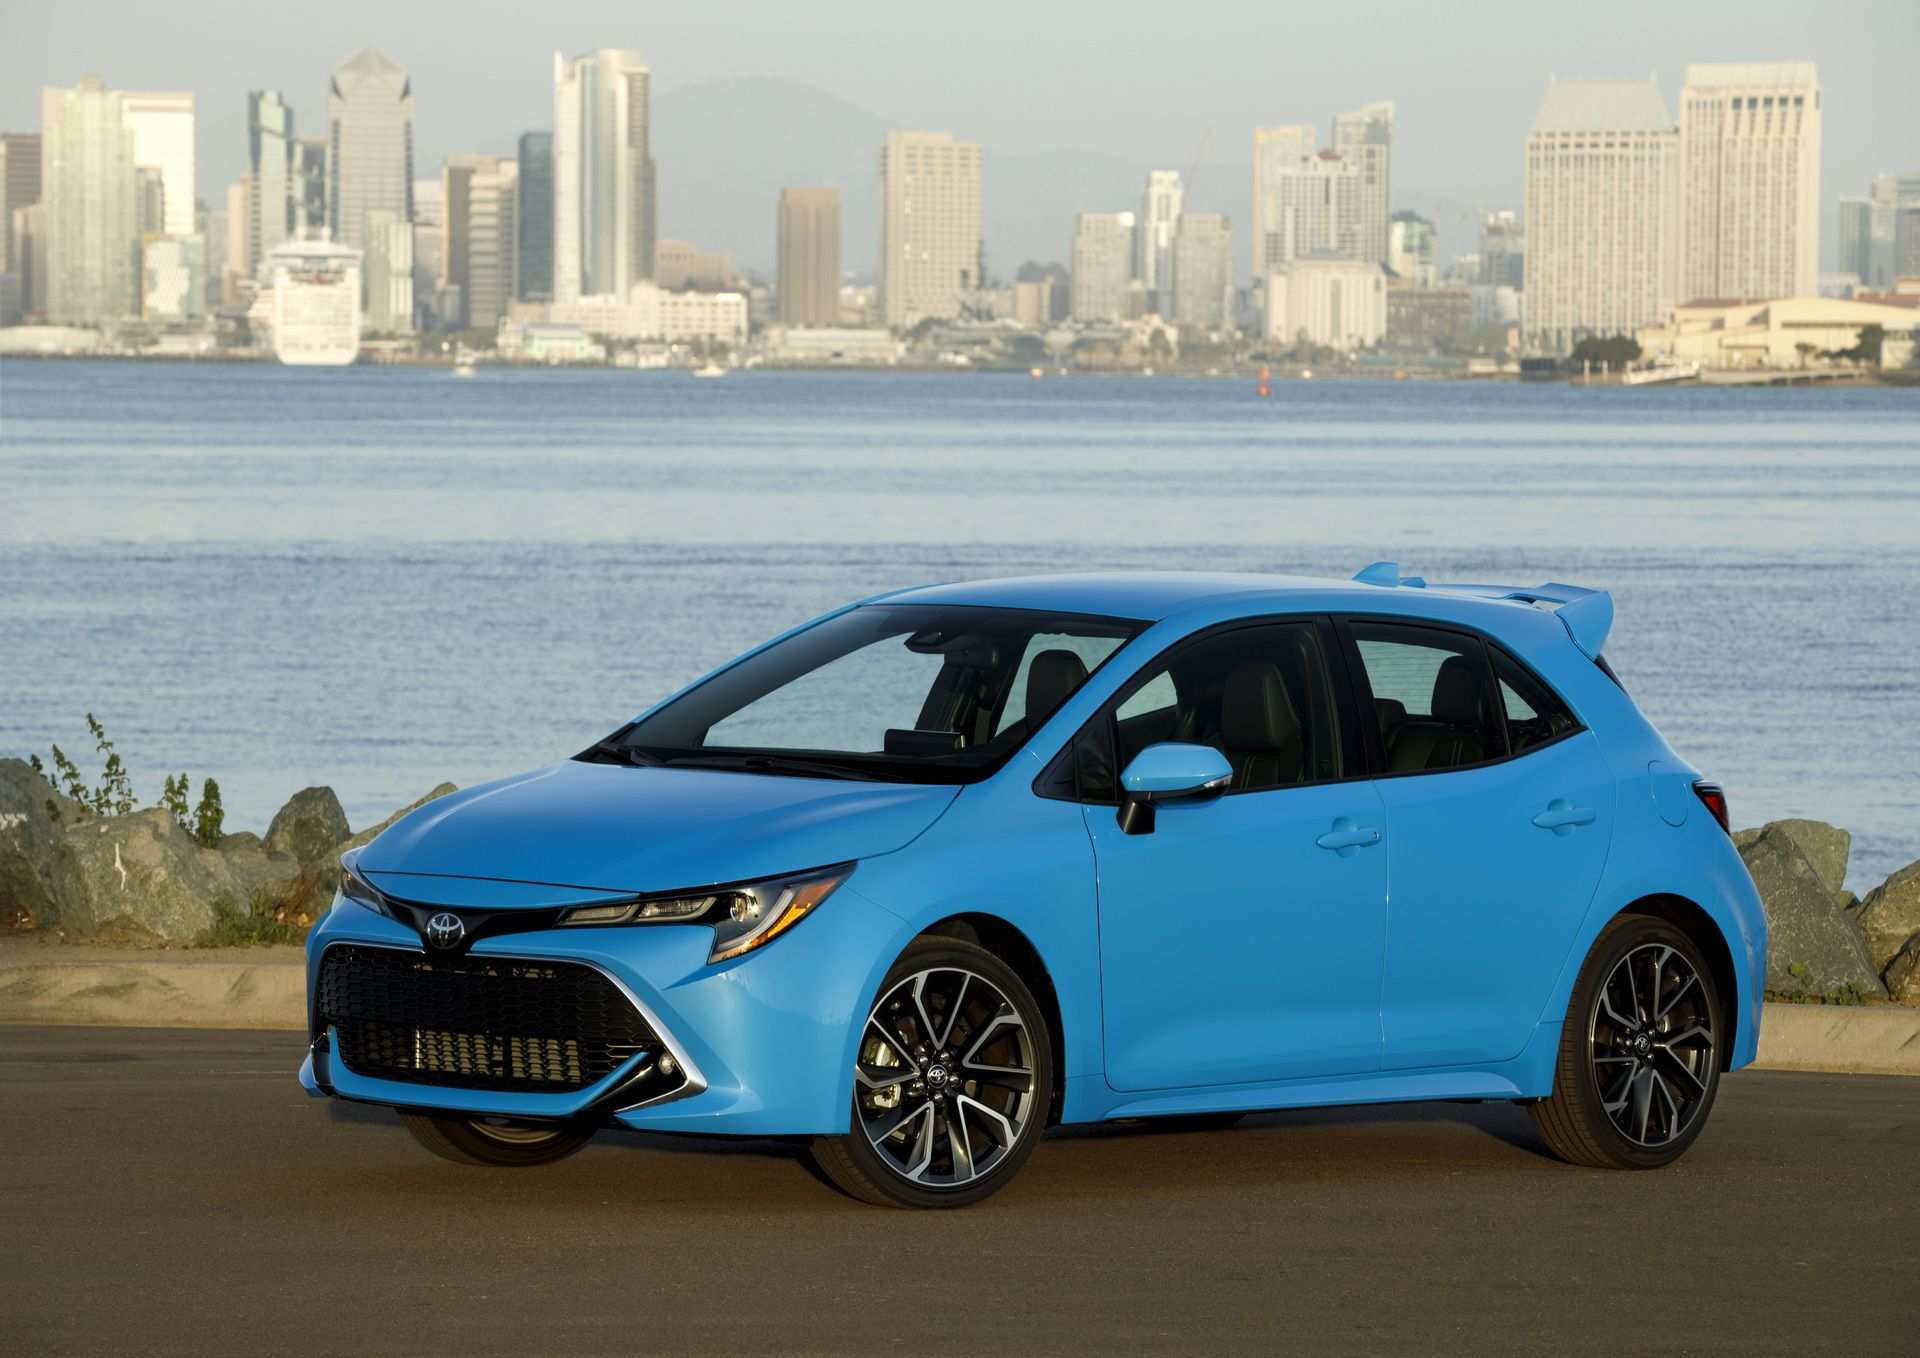 80 Best Review 2019 Toyota Corolla Hatchback Review Exterior and Interior by 2019 Toyota Corolla Hatchback Review